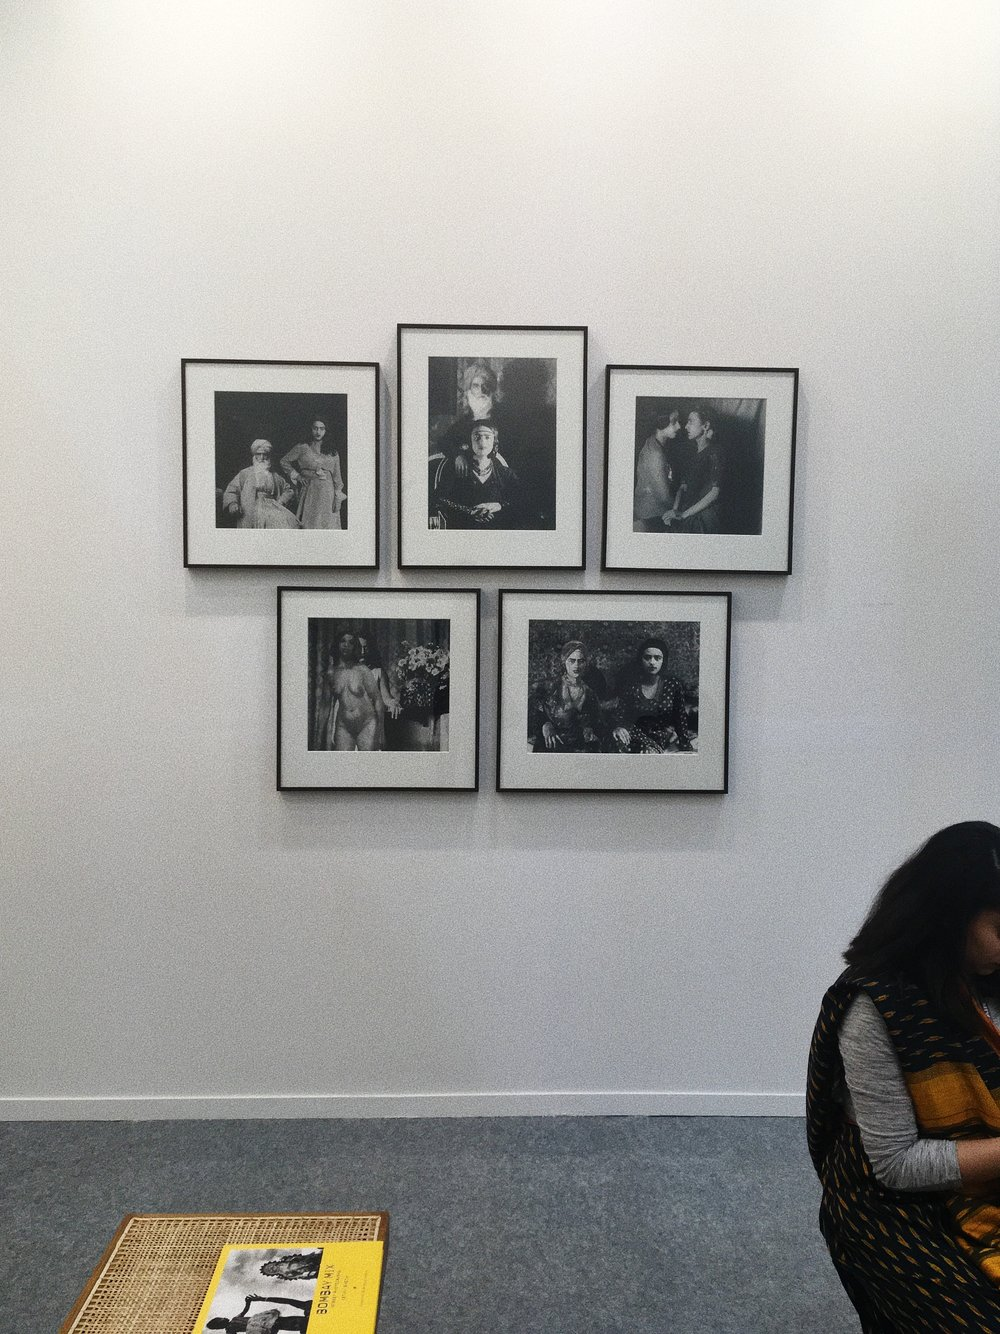 Installation view of  Re-take of Amrita  (2001) by Vivan Sundaram at Photoink booth, India Art Fair 2018